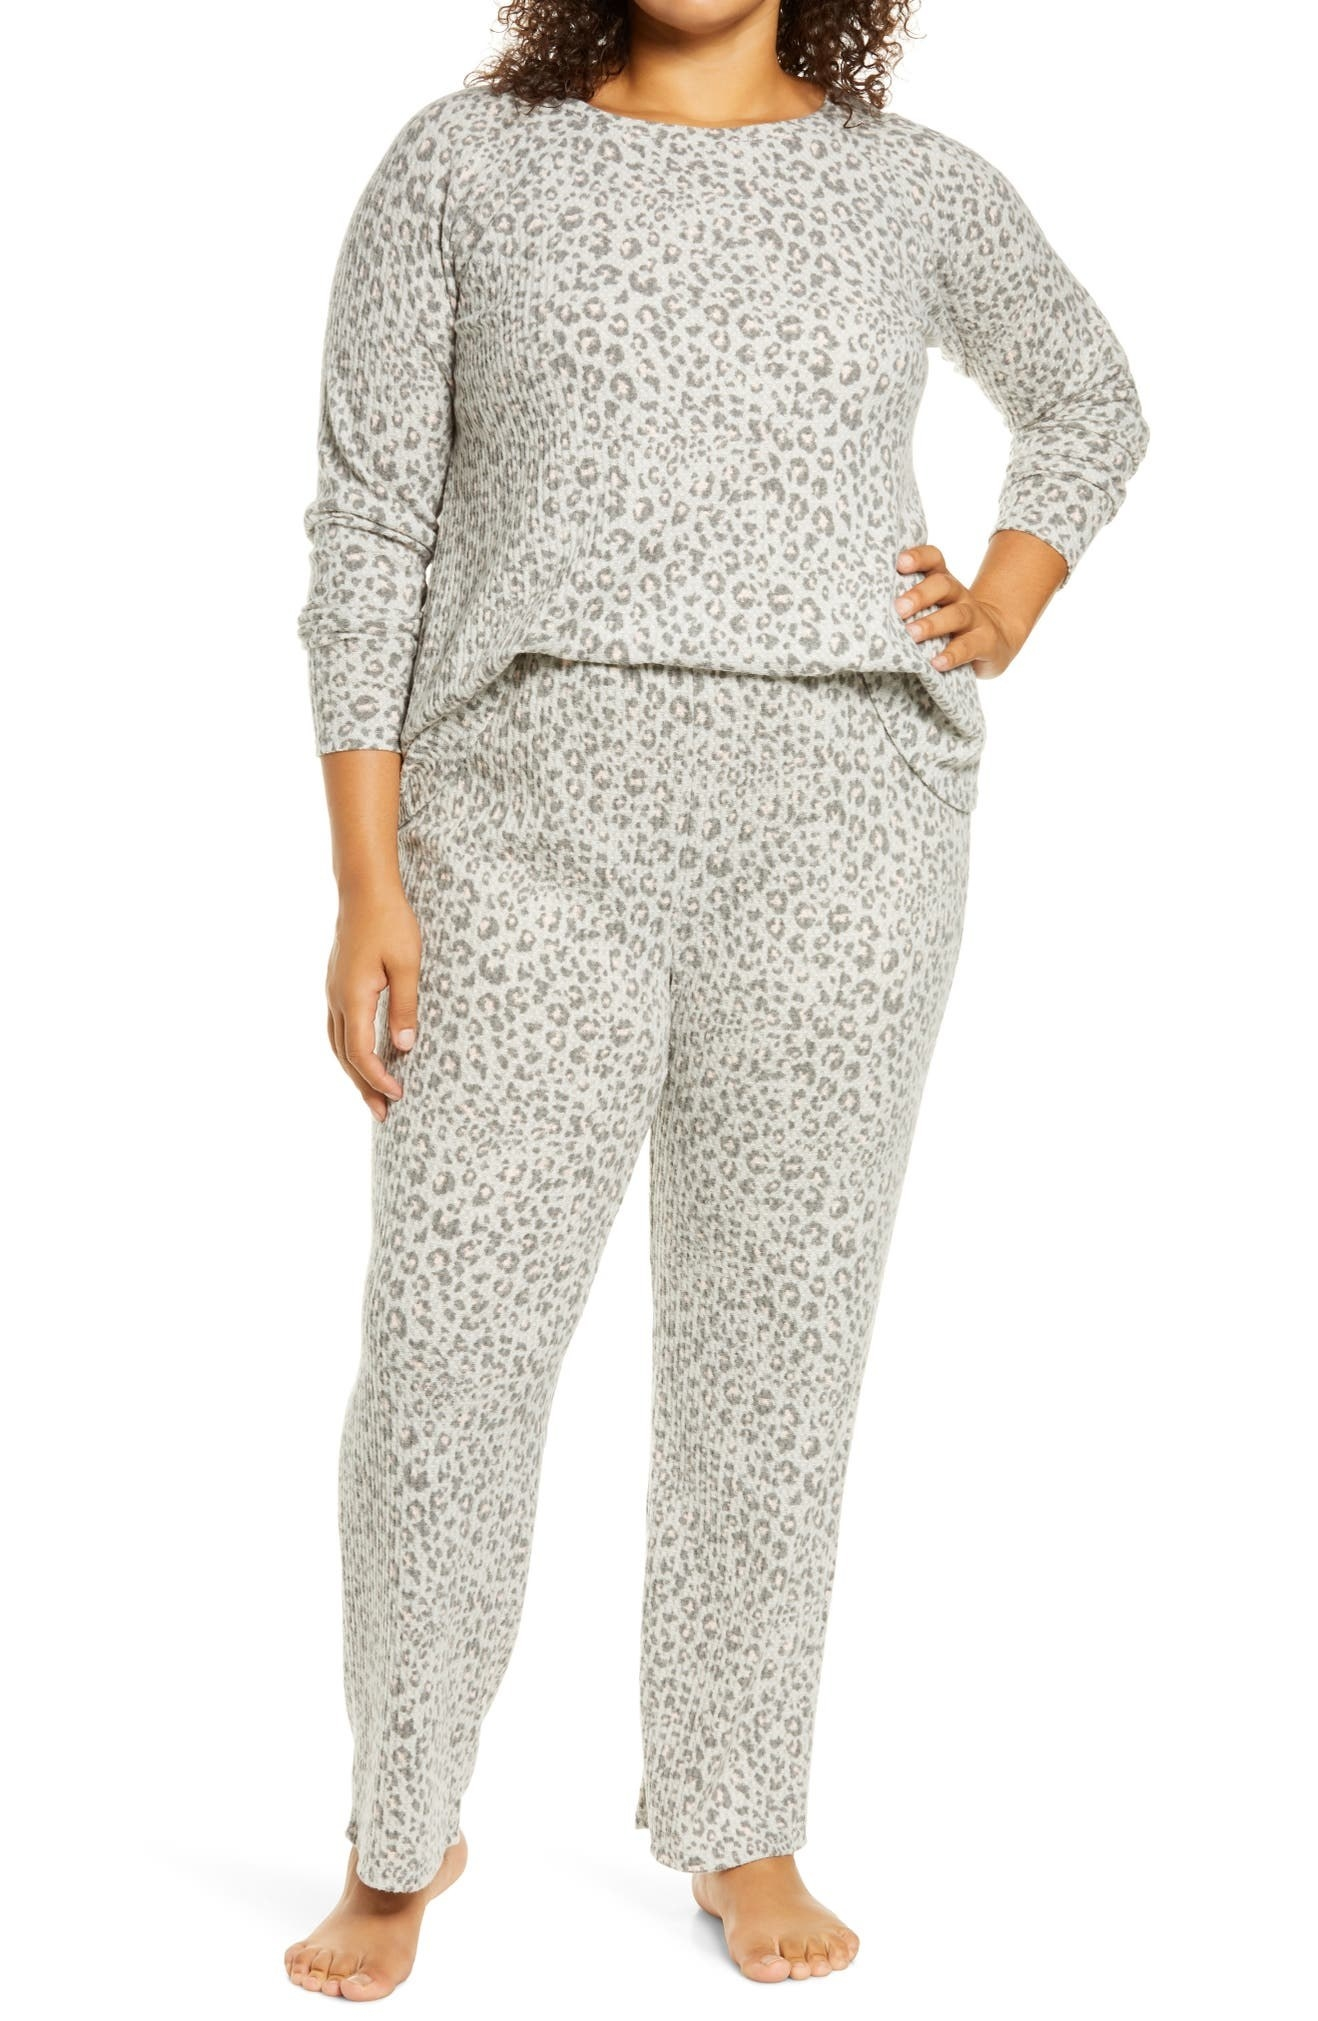 Model wearing the full-length pajama pants and long-sleeved shirt in grey with a darker grey leopard print on them